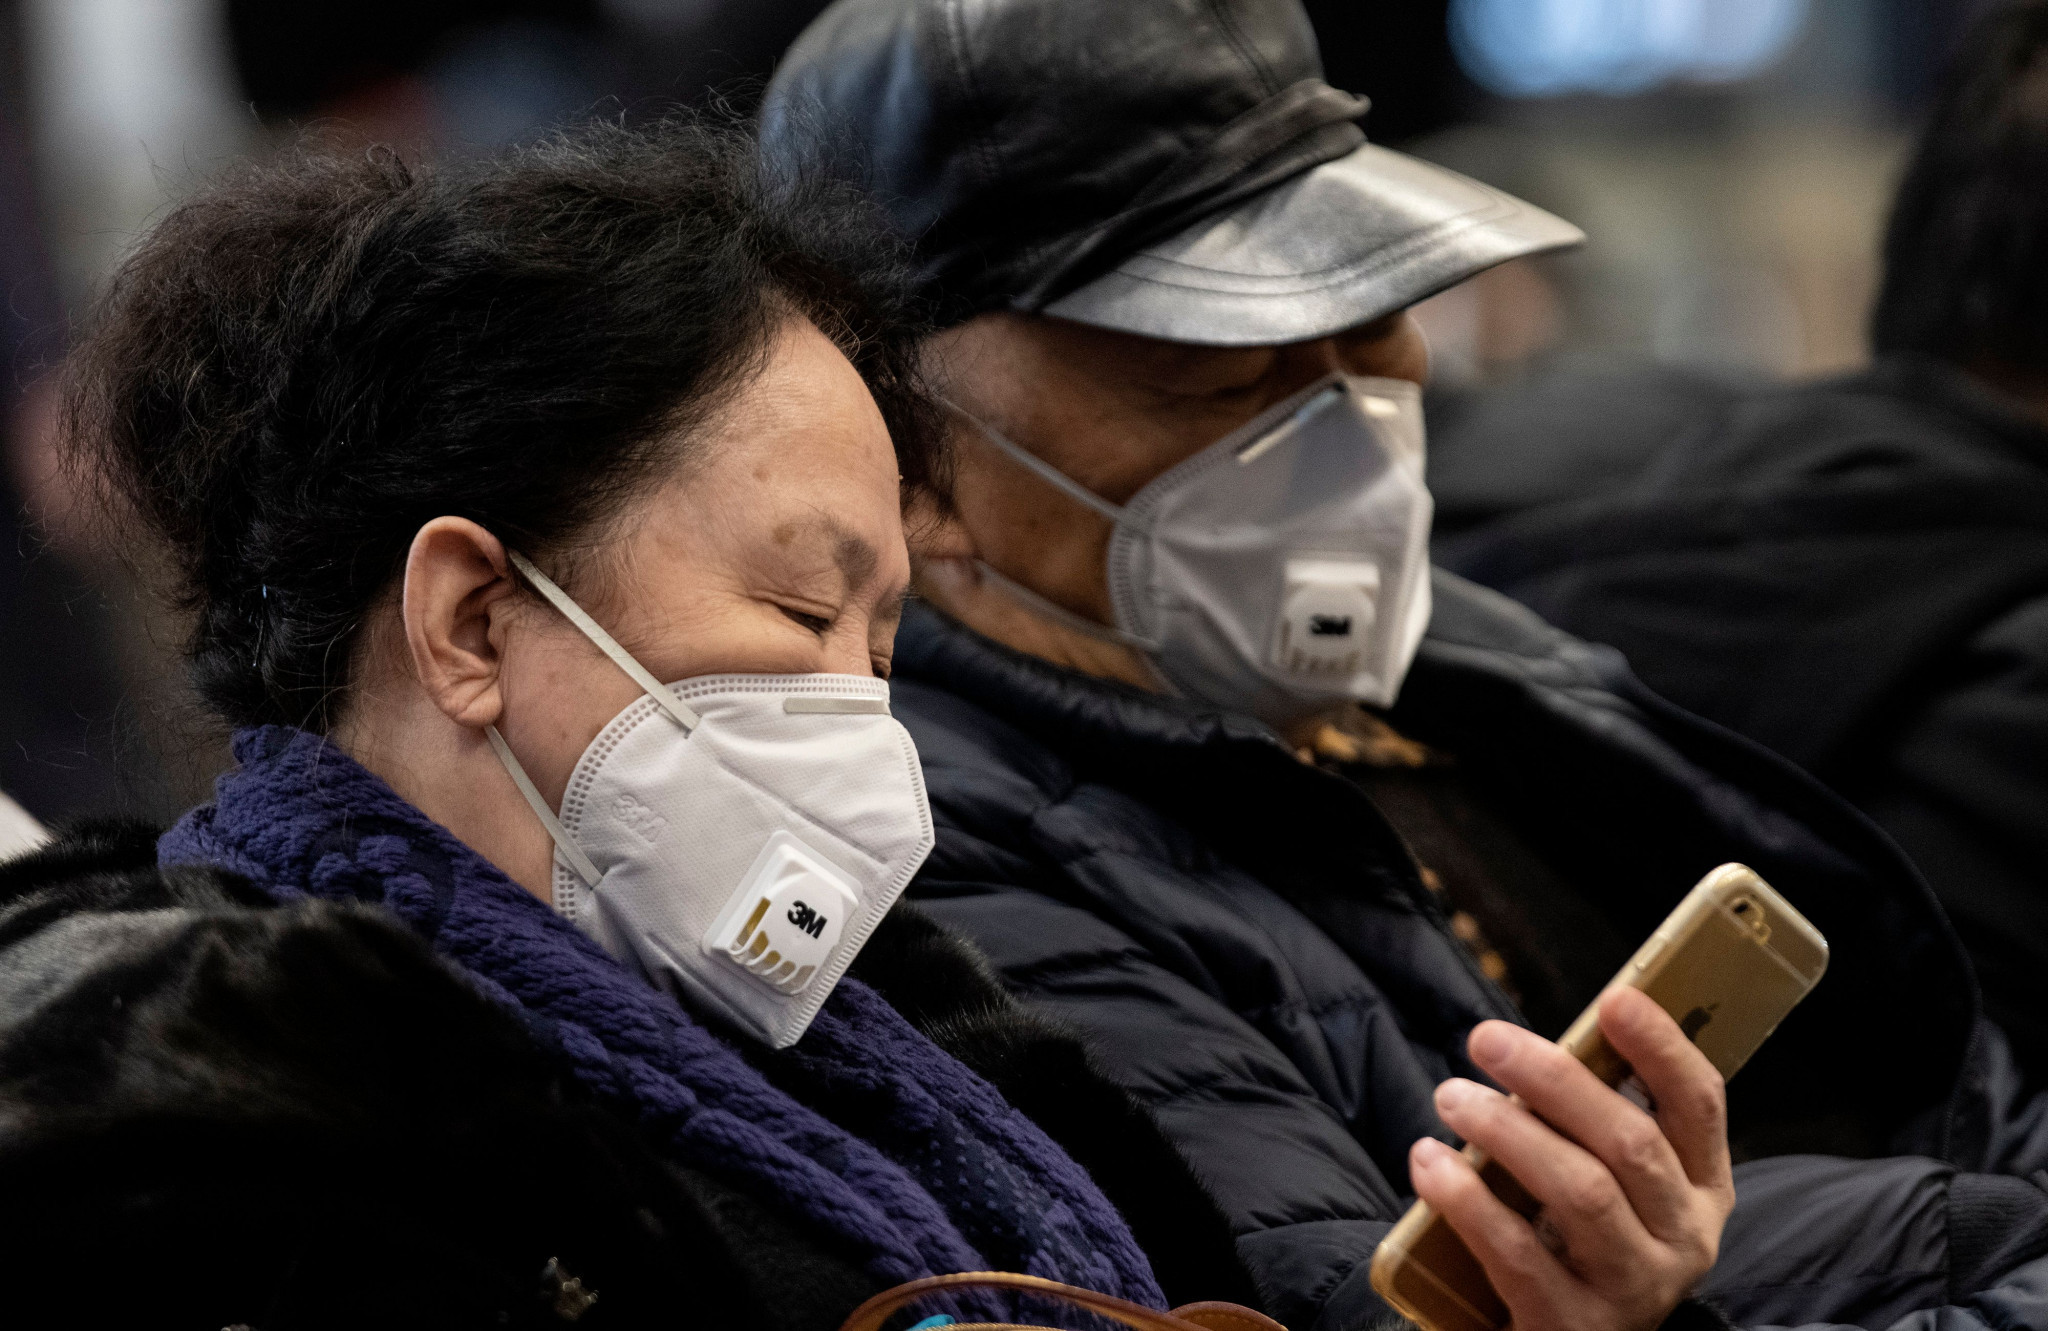 Health authorities in China have confirmed the virus can be transmitted between humans ©Getty Images